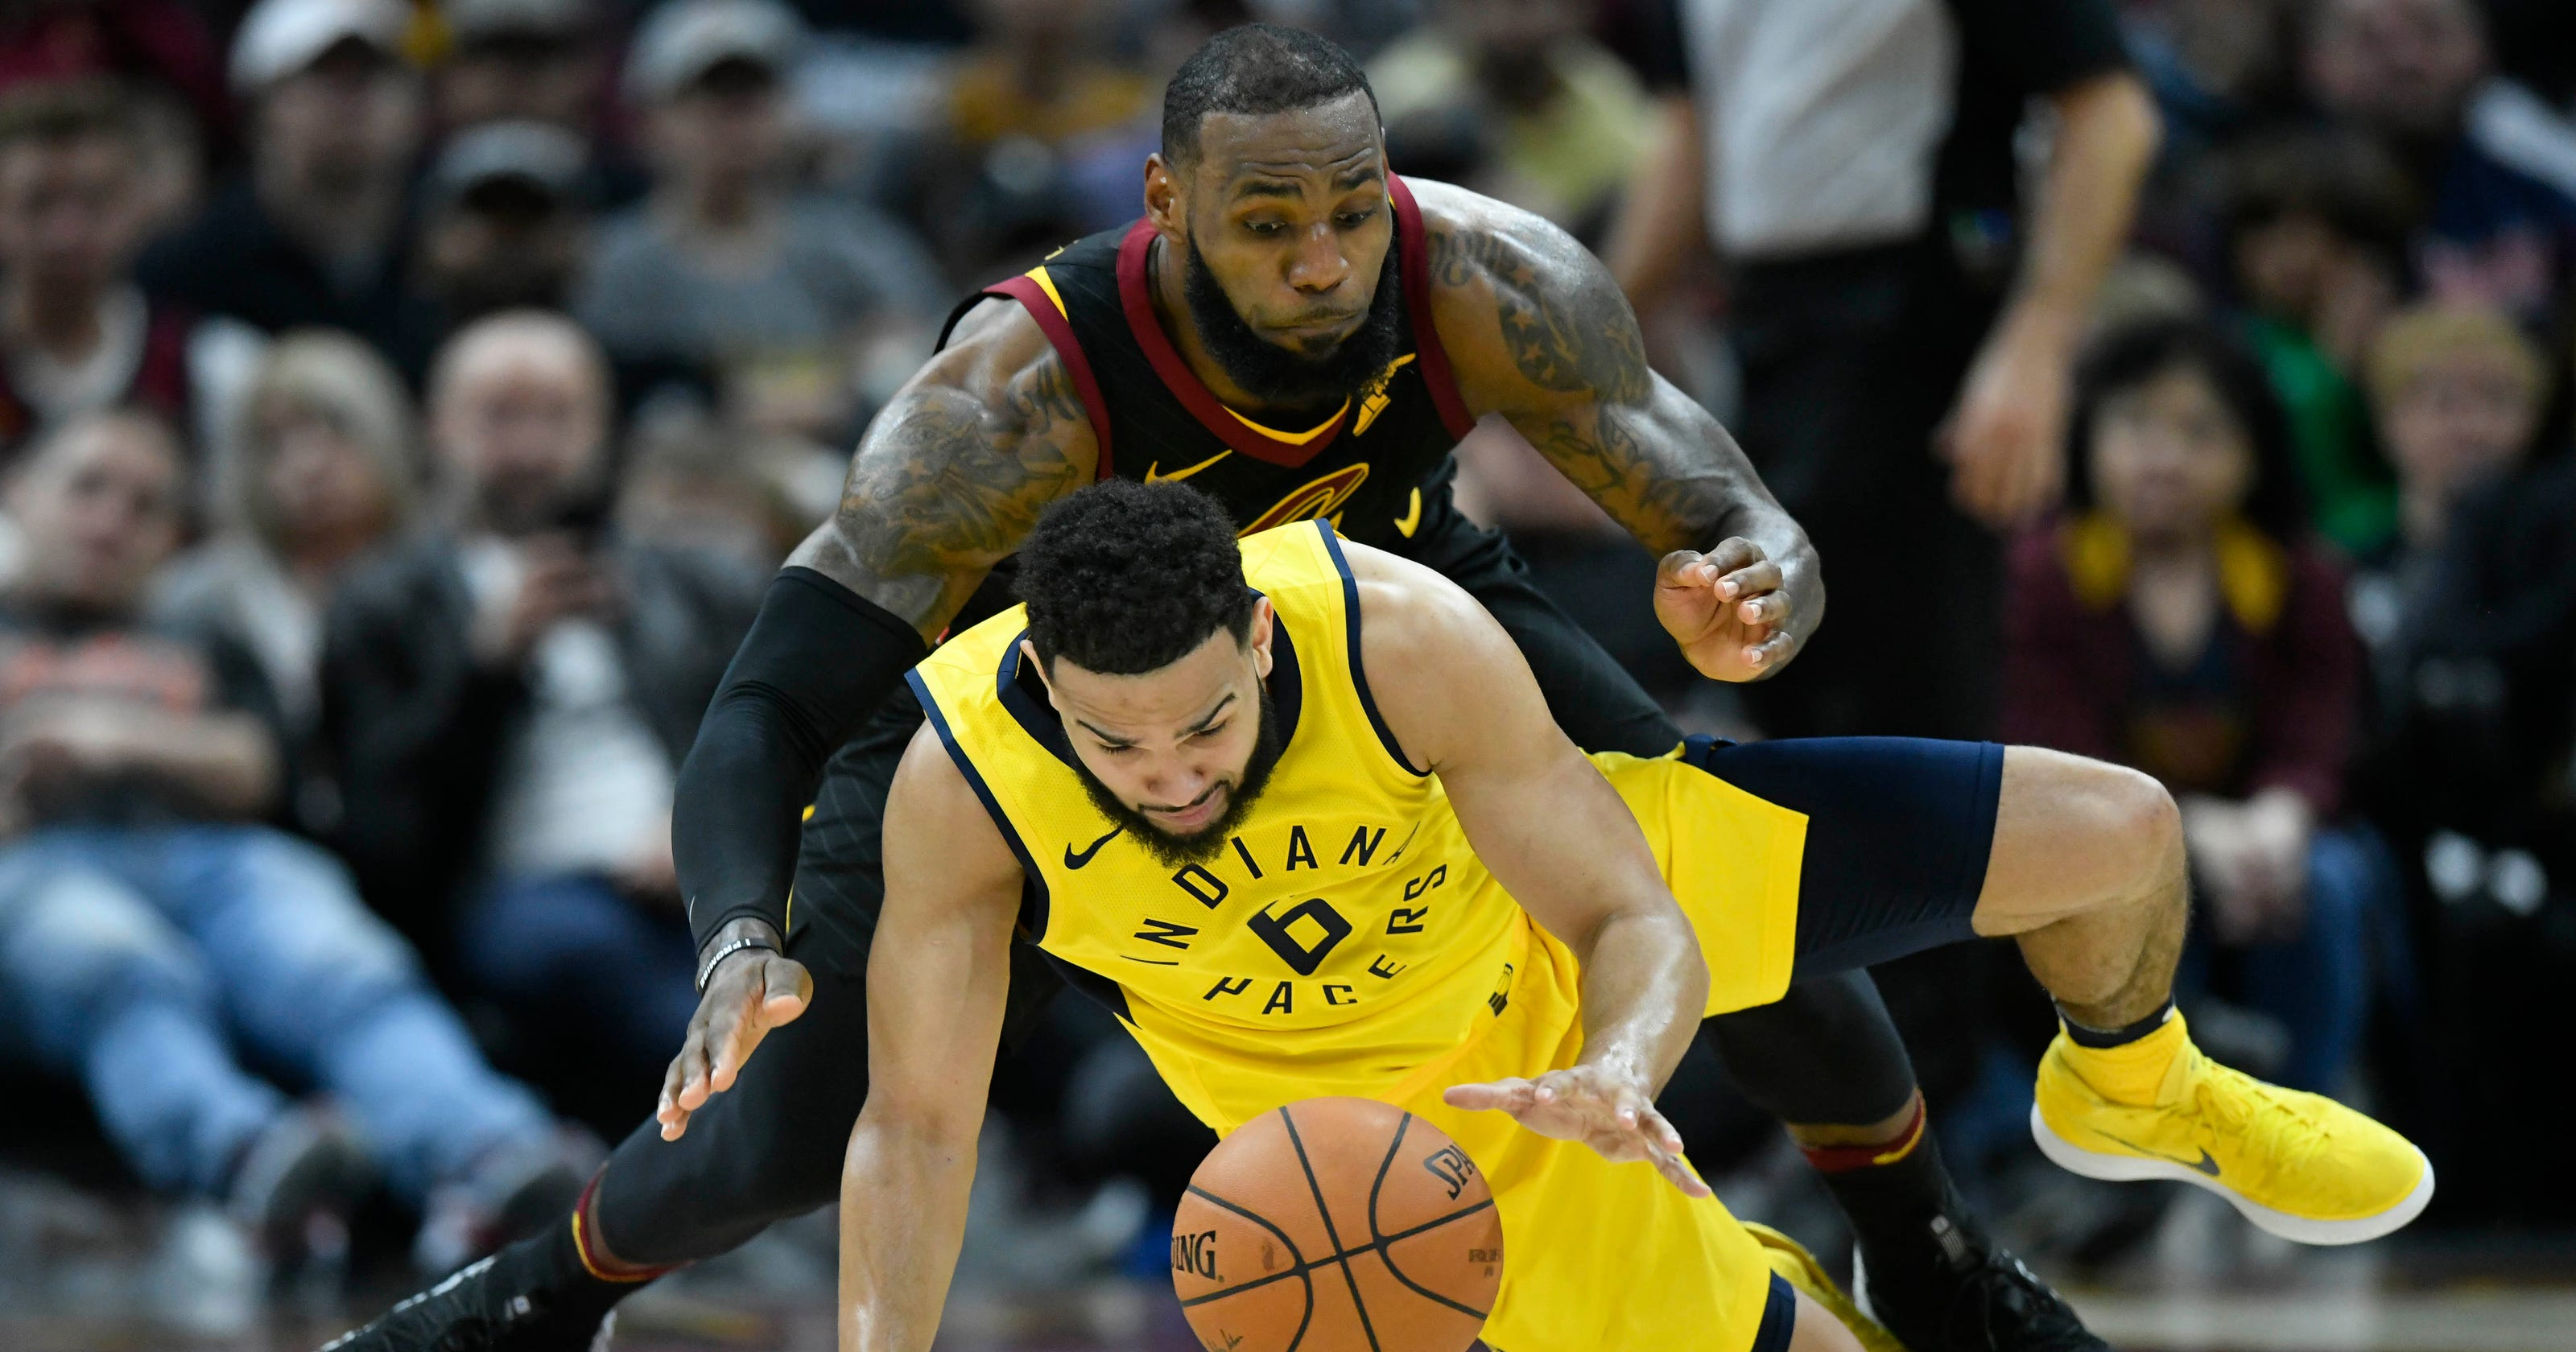 d2f99d33d36 Blue-collar Pacers good enough to take down LeBron James